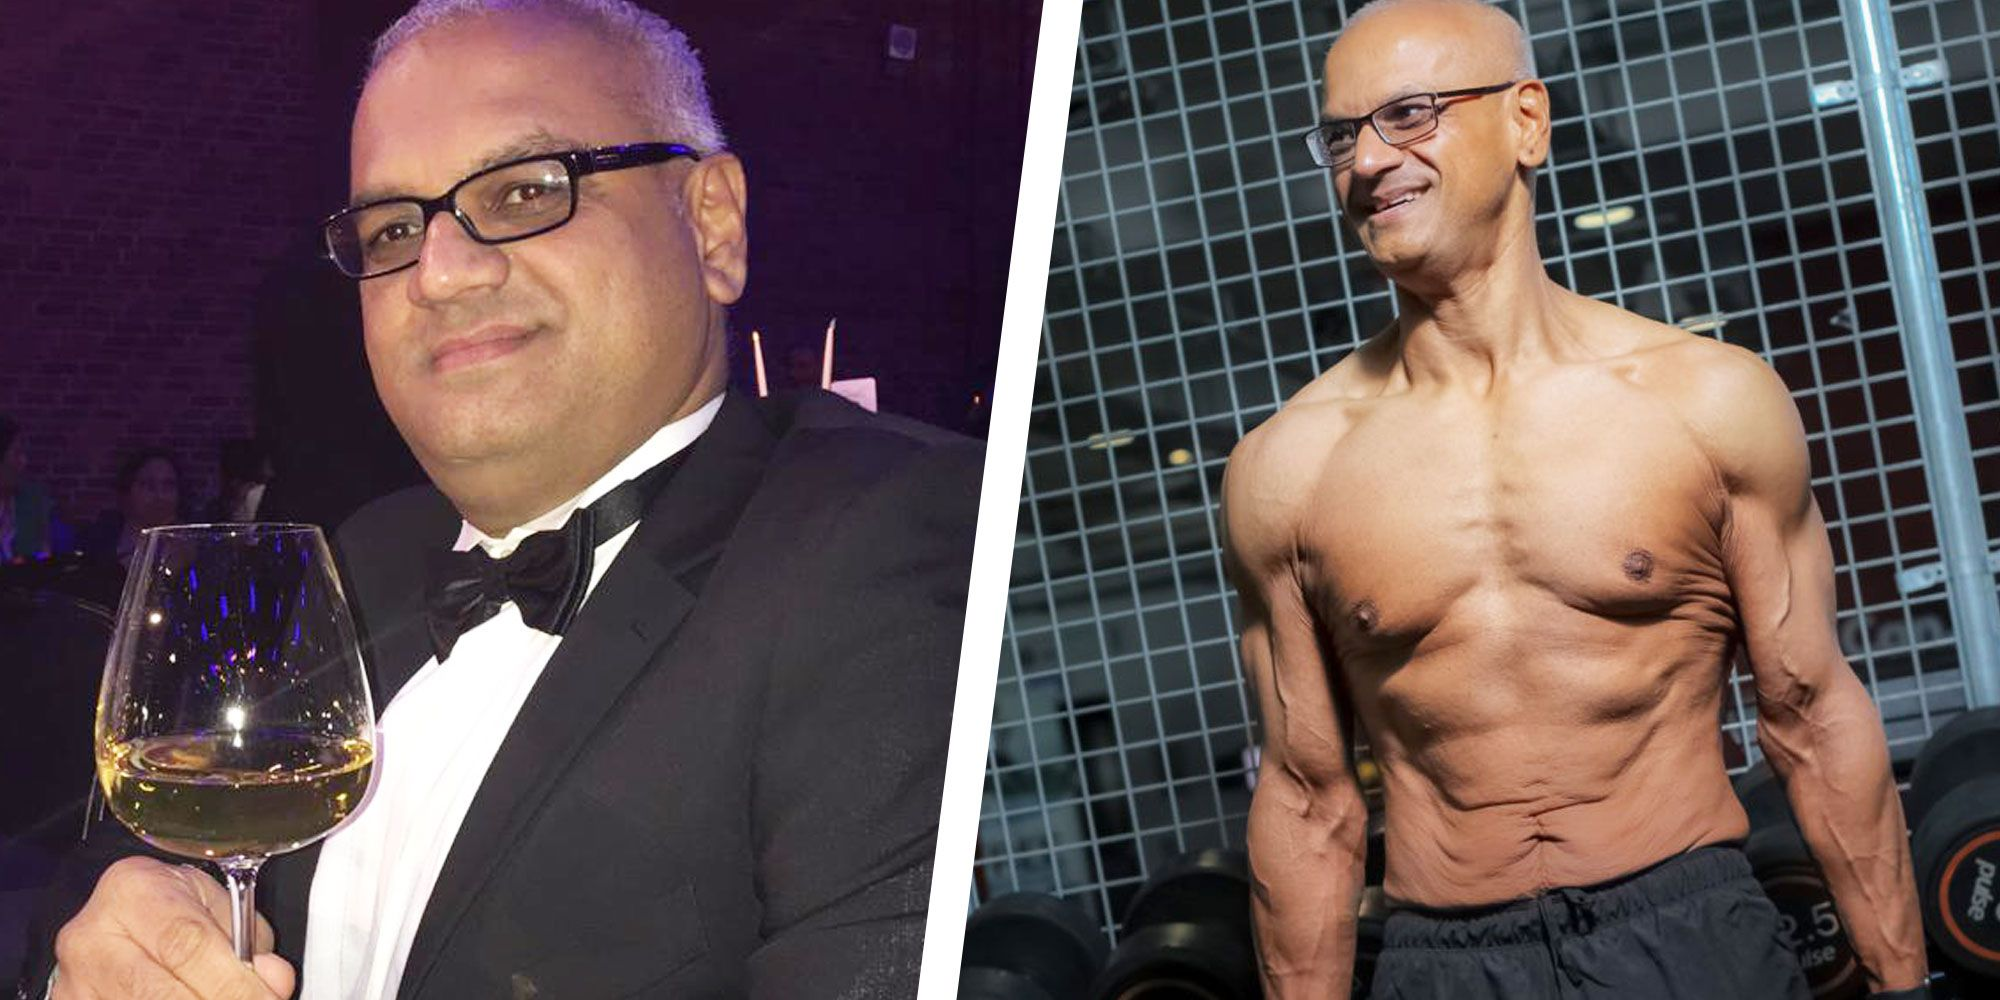 Fixing His Diet Helped This Guy Lose 45kg and Get Shredded at Age 50